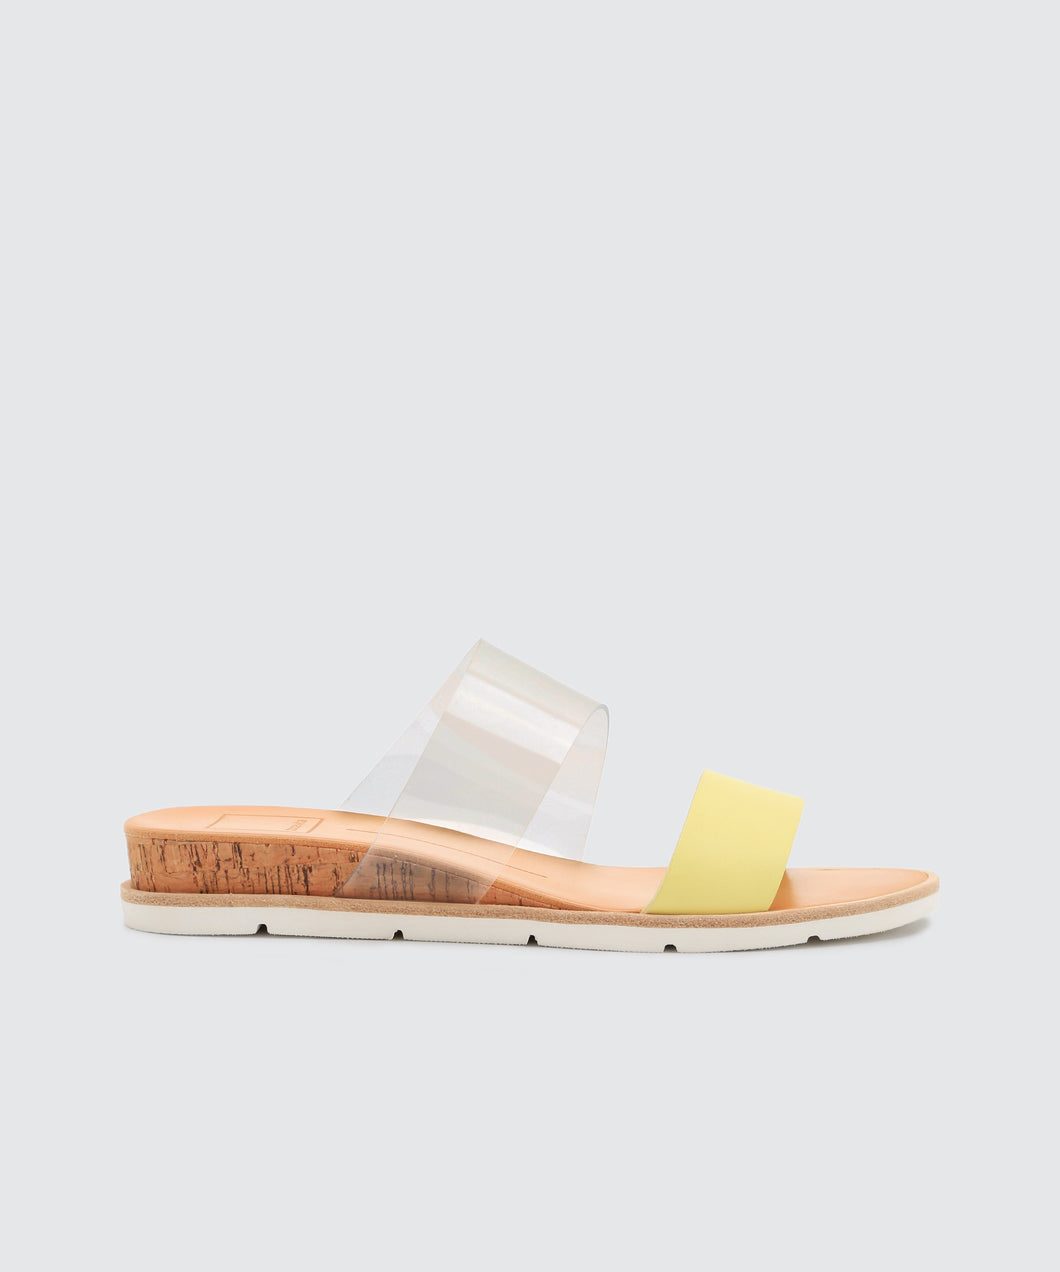 VALA SANDALS IN CITRON/CRYSTAL -   Dolce Vita